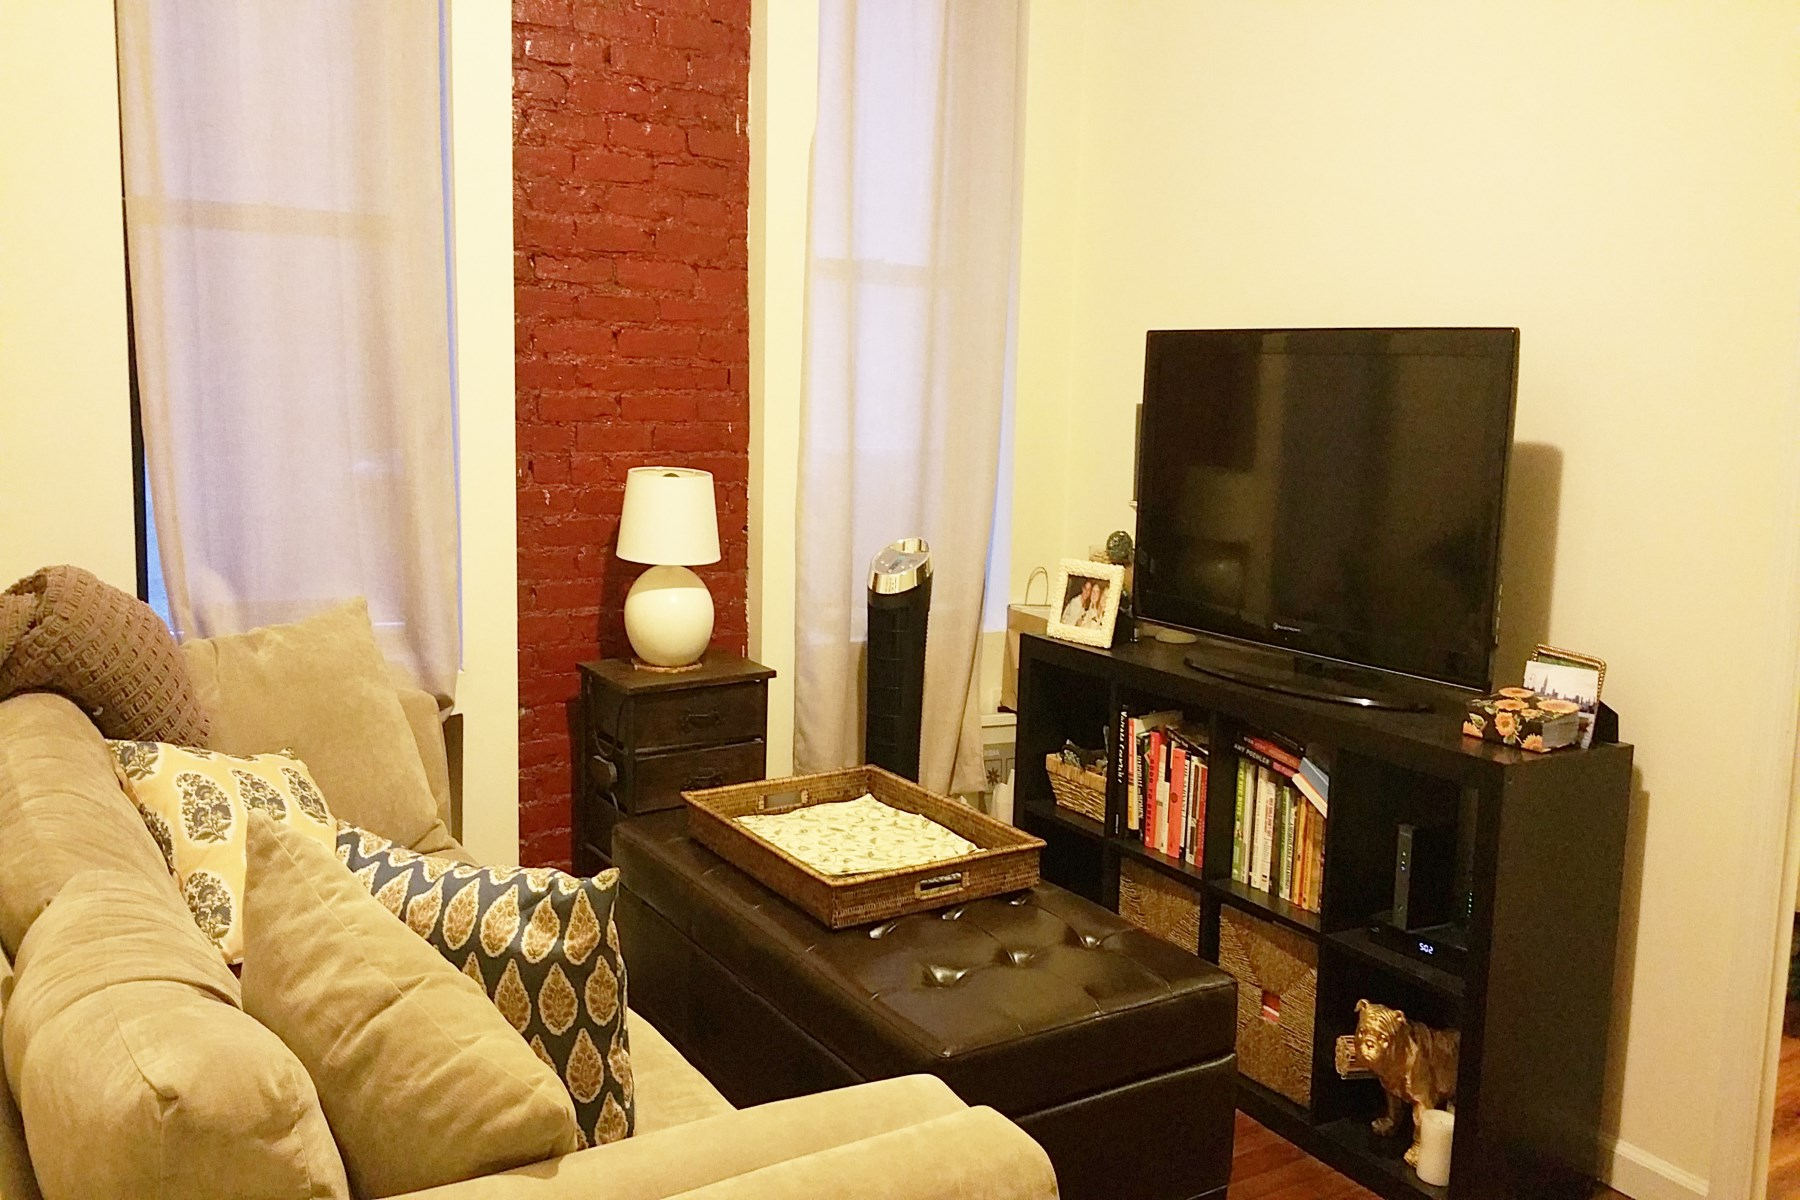 Property Of 714 Amsterdam Avenue, Apt. 1